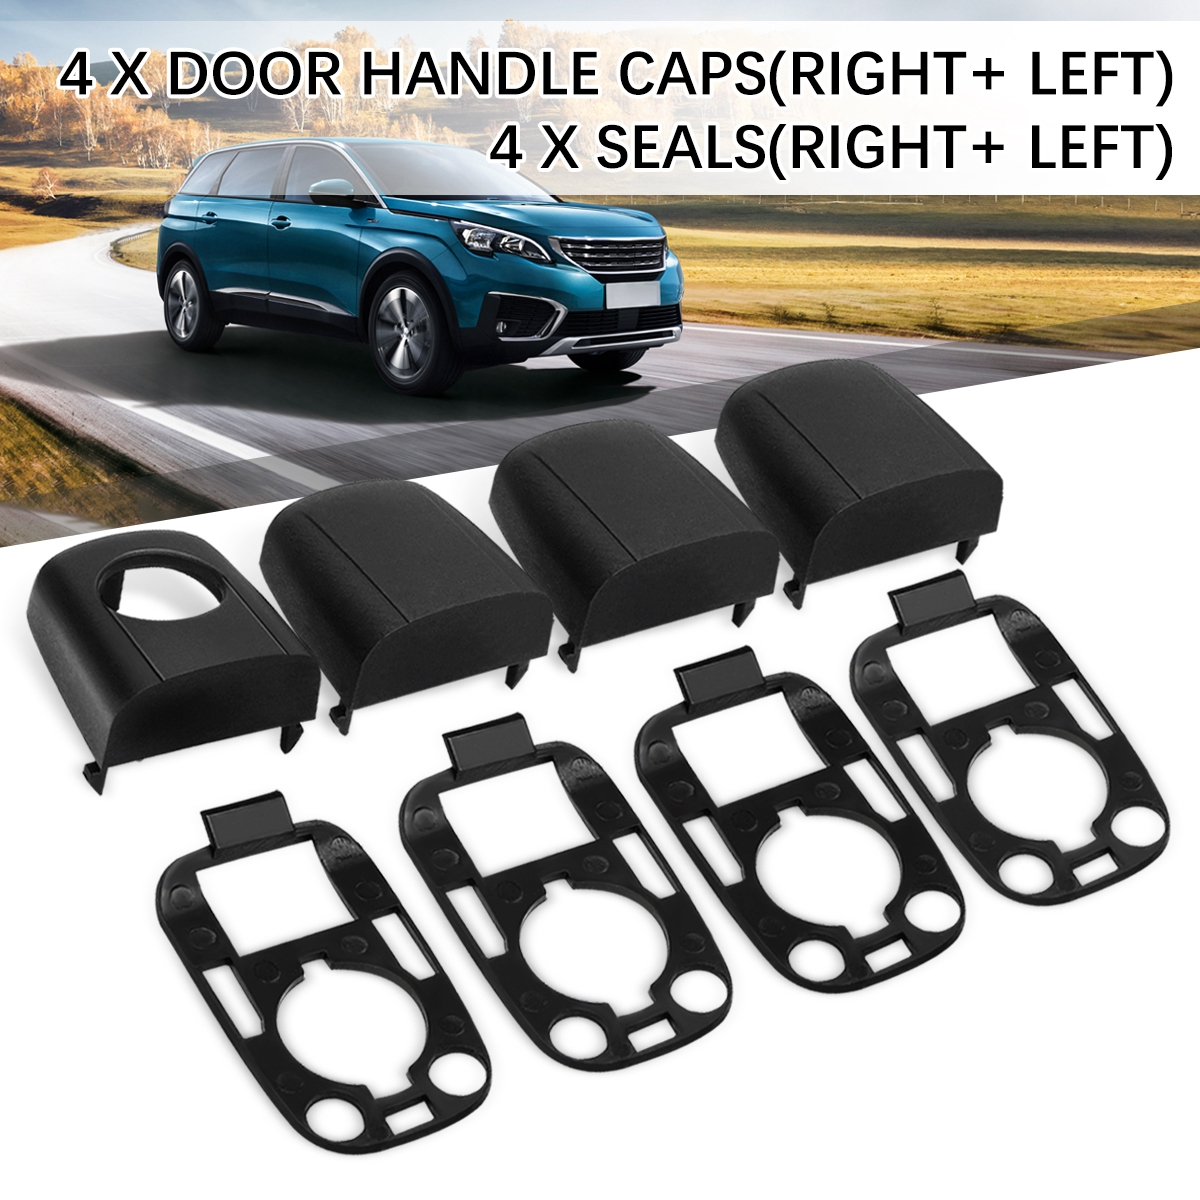 Protective Lock Cover Black L&R Door Handle Lock Cover Cap Case Trim With Gasket w/Seals For PEUGEOT 307 for CITROEN C2 C3 03-09Protective Lock Cover Black L&R Door Handle Lock Cover Cap Case Trim With Gasket w/Seals For PEUGEOT 307 for CITROEN C2 C3 03-09